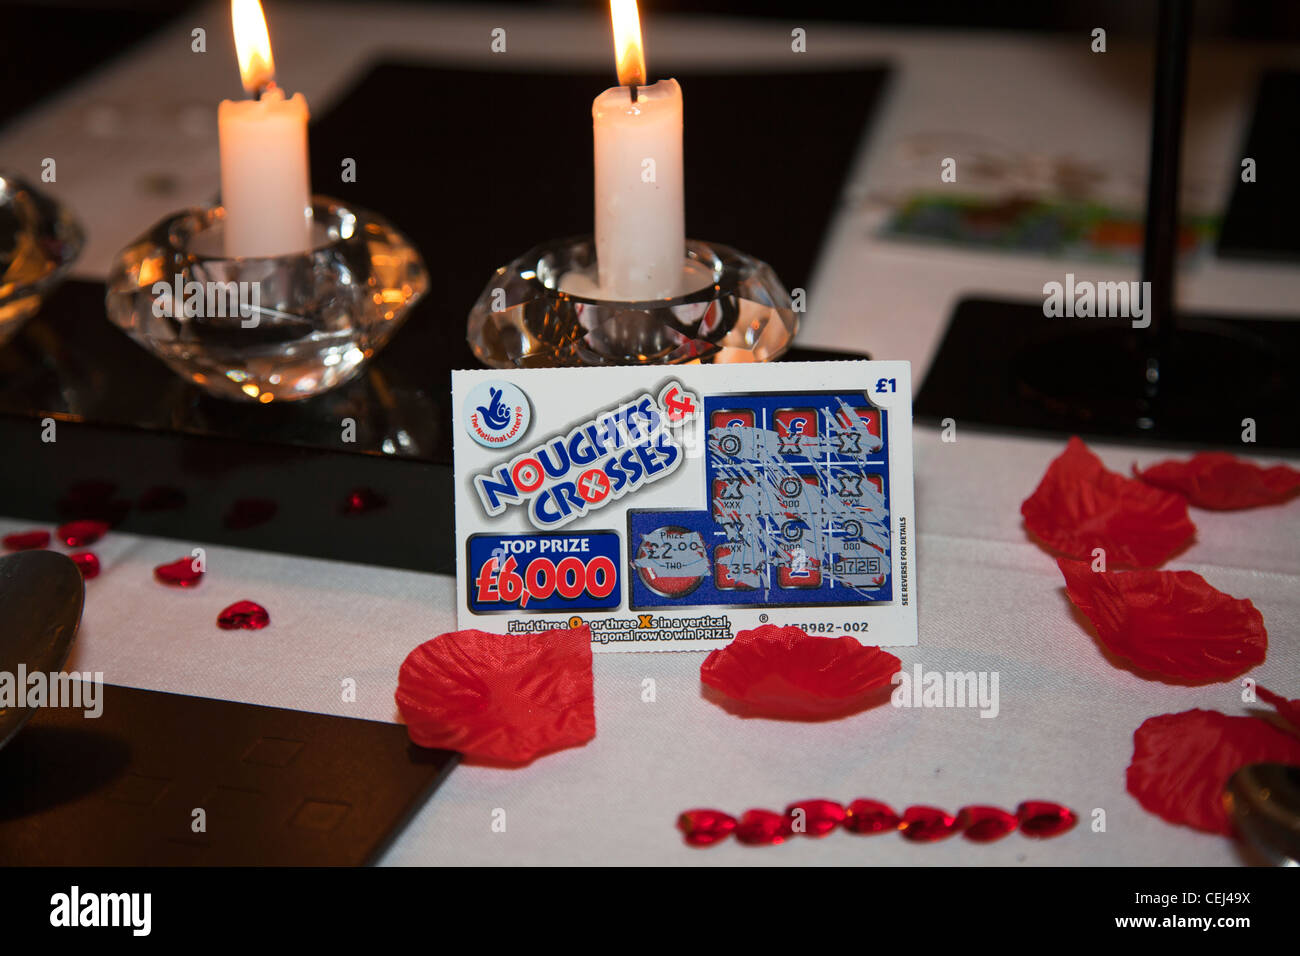 Winning scratch card £2 win leant up against candles on table - Stock Image